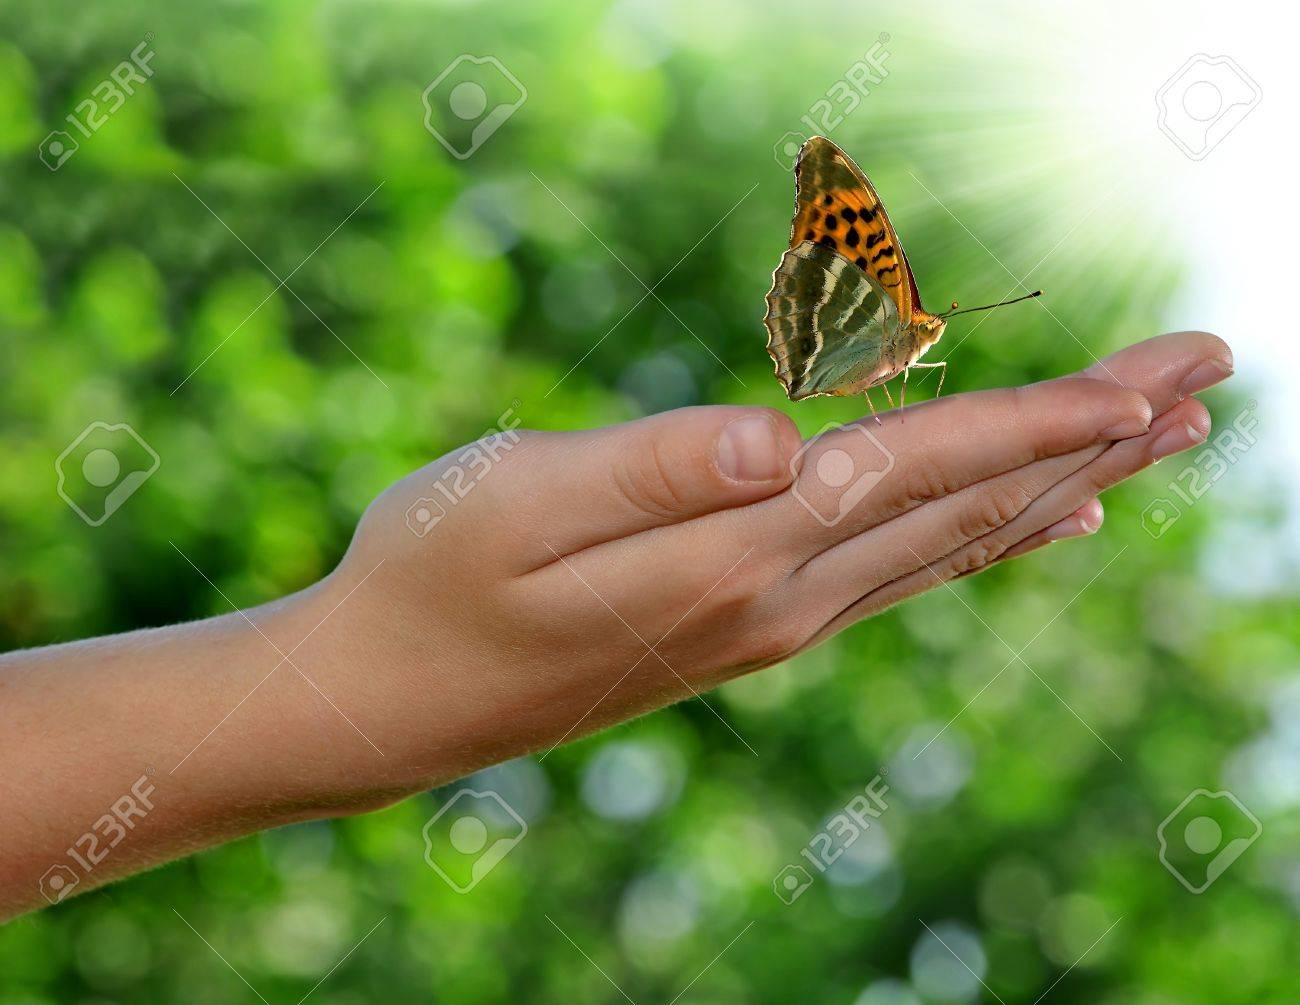 Worksheet Butterfly Beetle butterflies beetle insect stock photos images royalty free butterfly on childrens hands